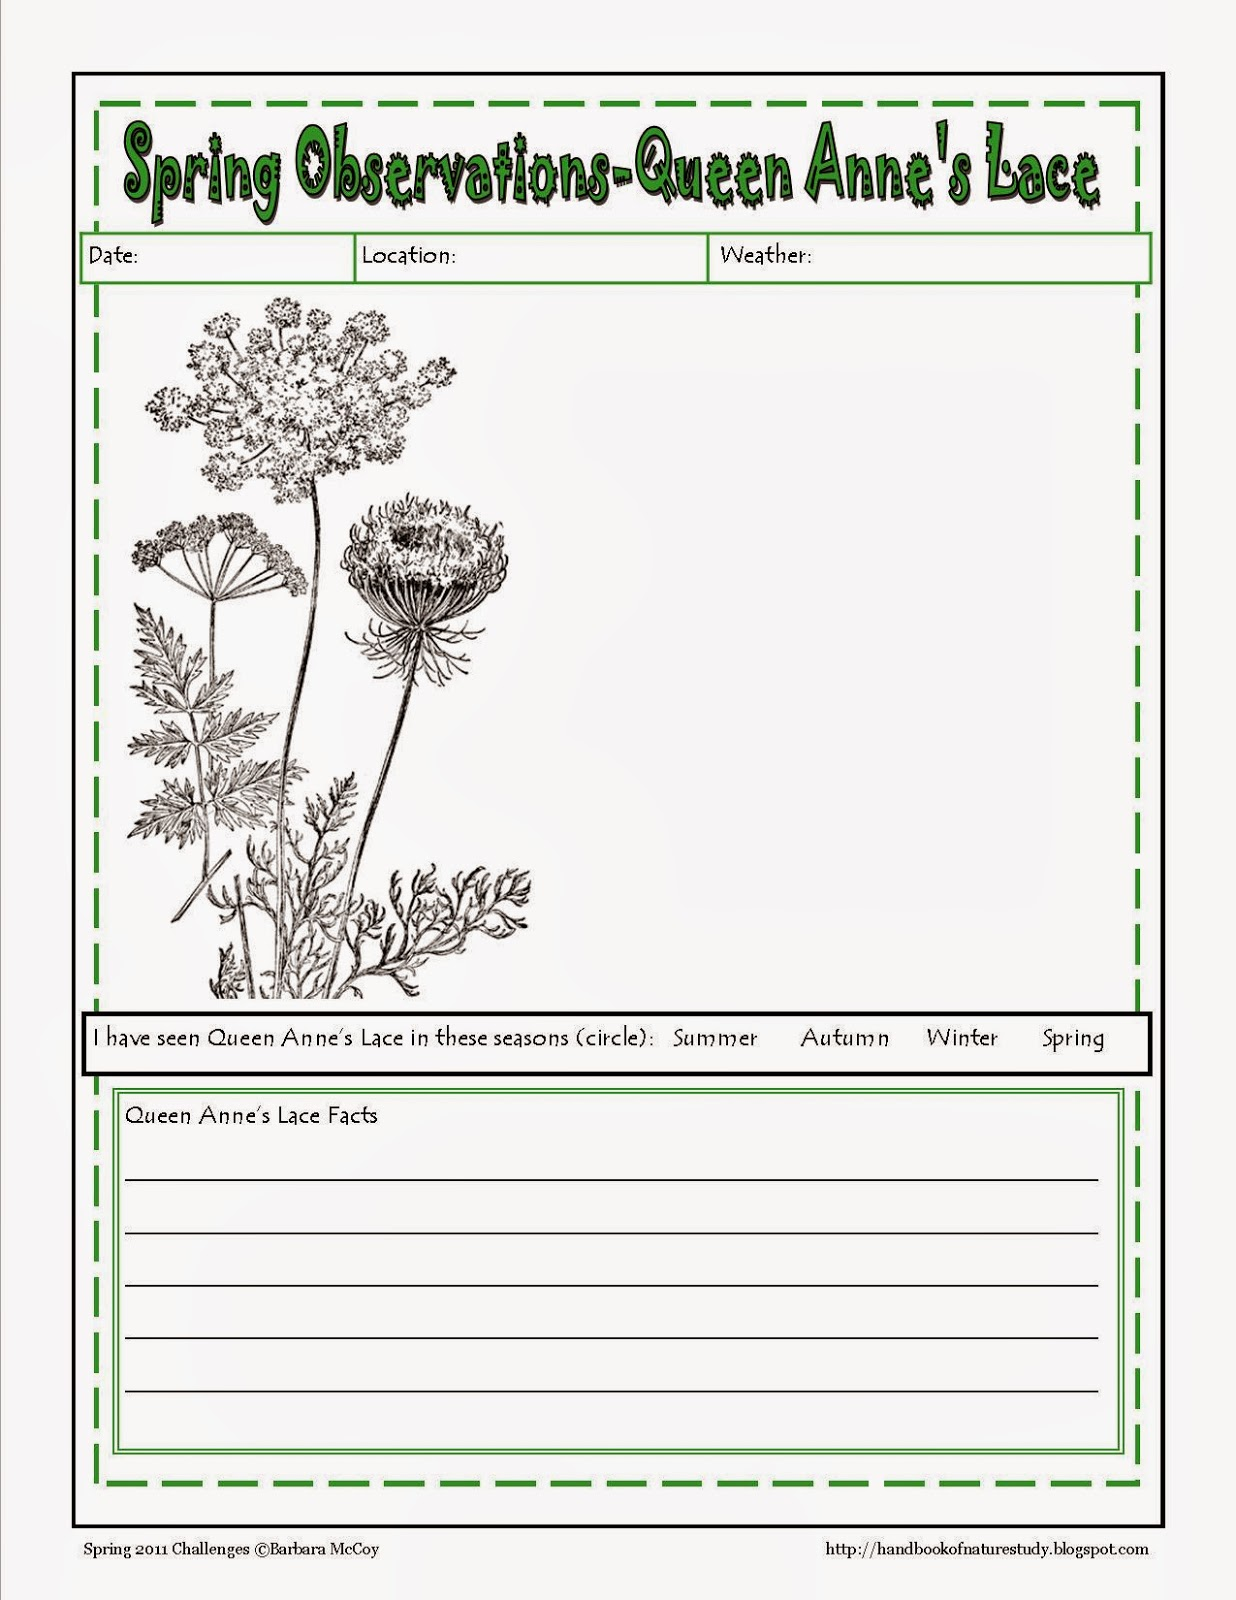 http://dl.dropbox.com/u/24014309/Queen%20Anne%27s%20Lace%20Spring%20Notebook%20Page.pdf